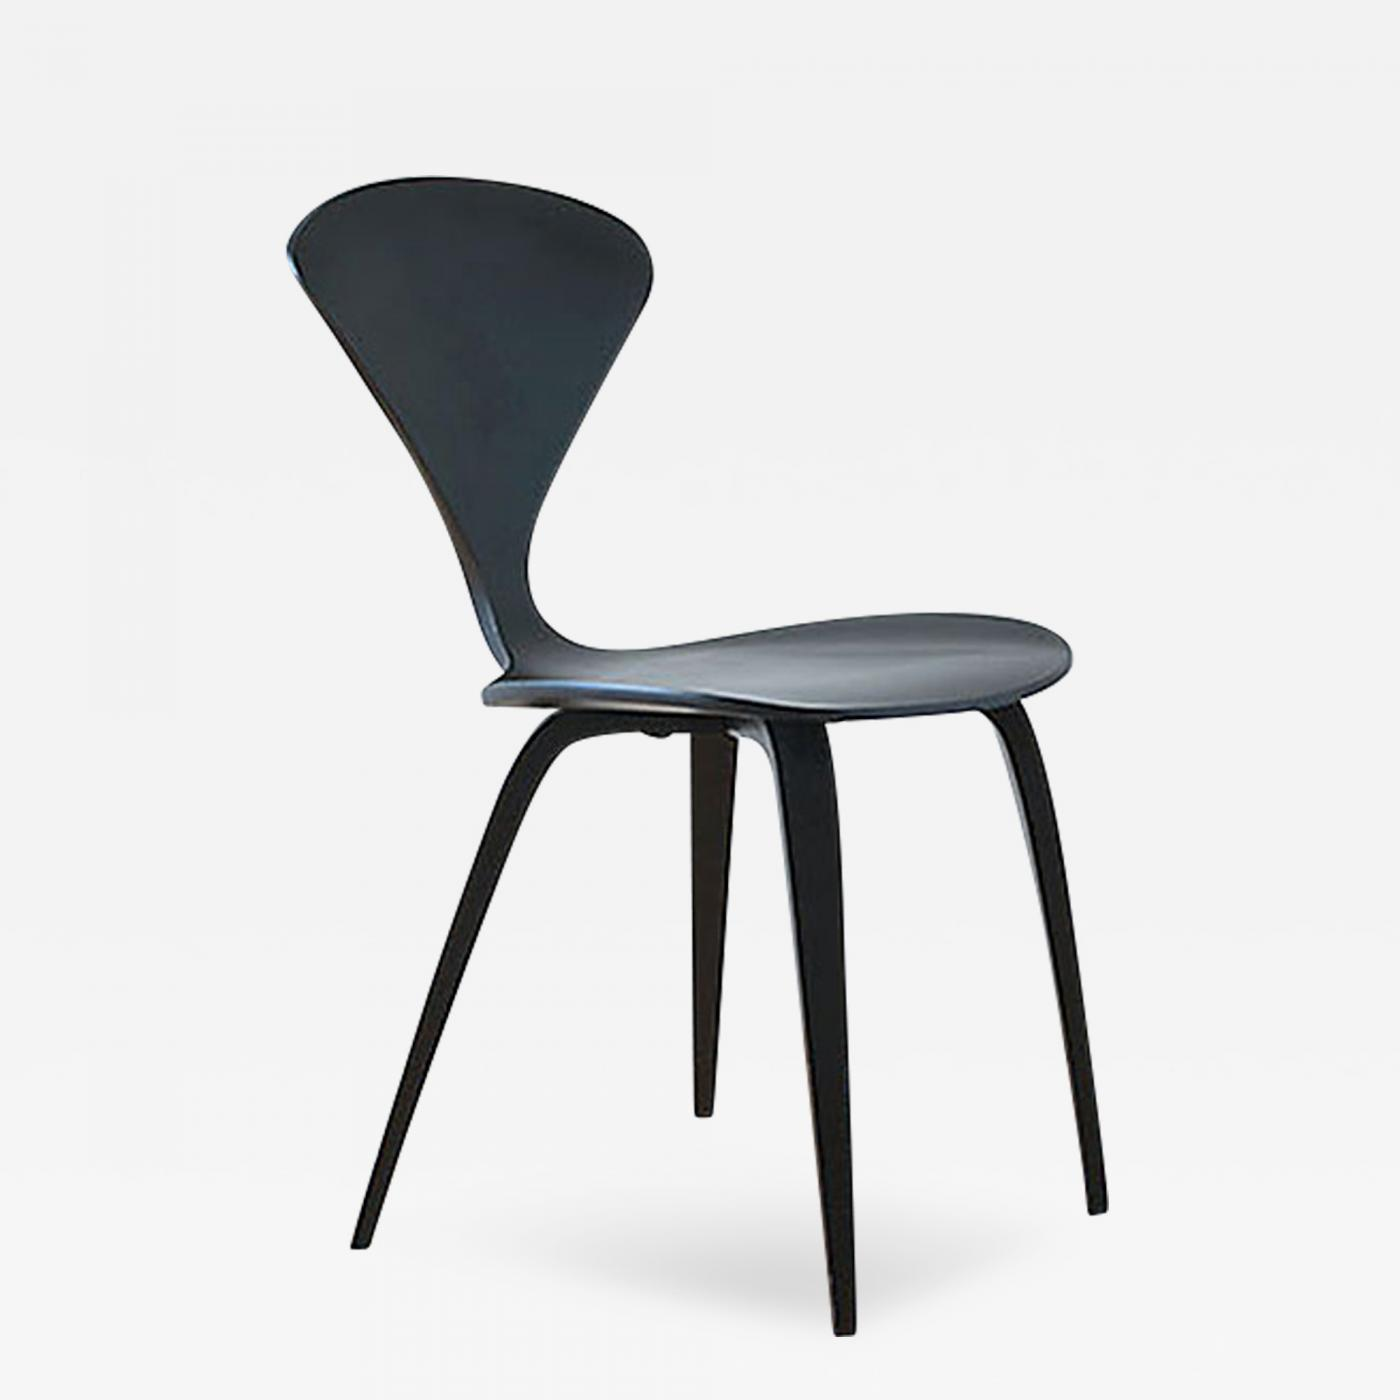 Norman Cherner Cherner Chair pany Side Chair